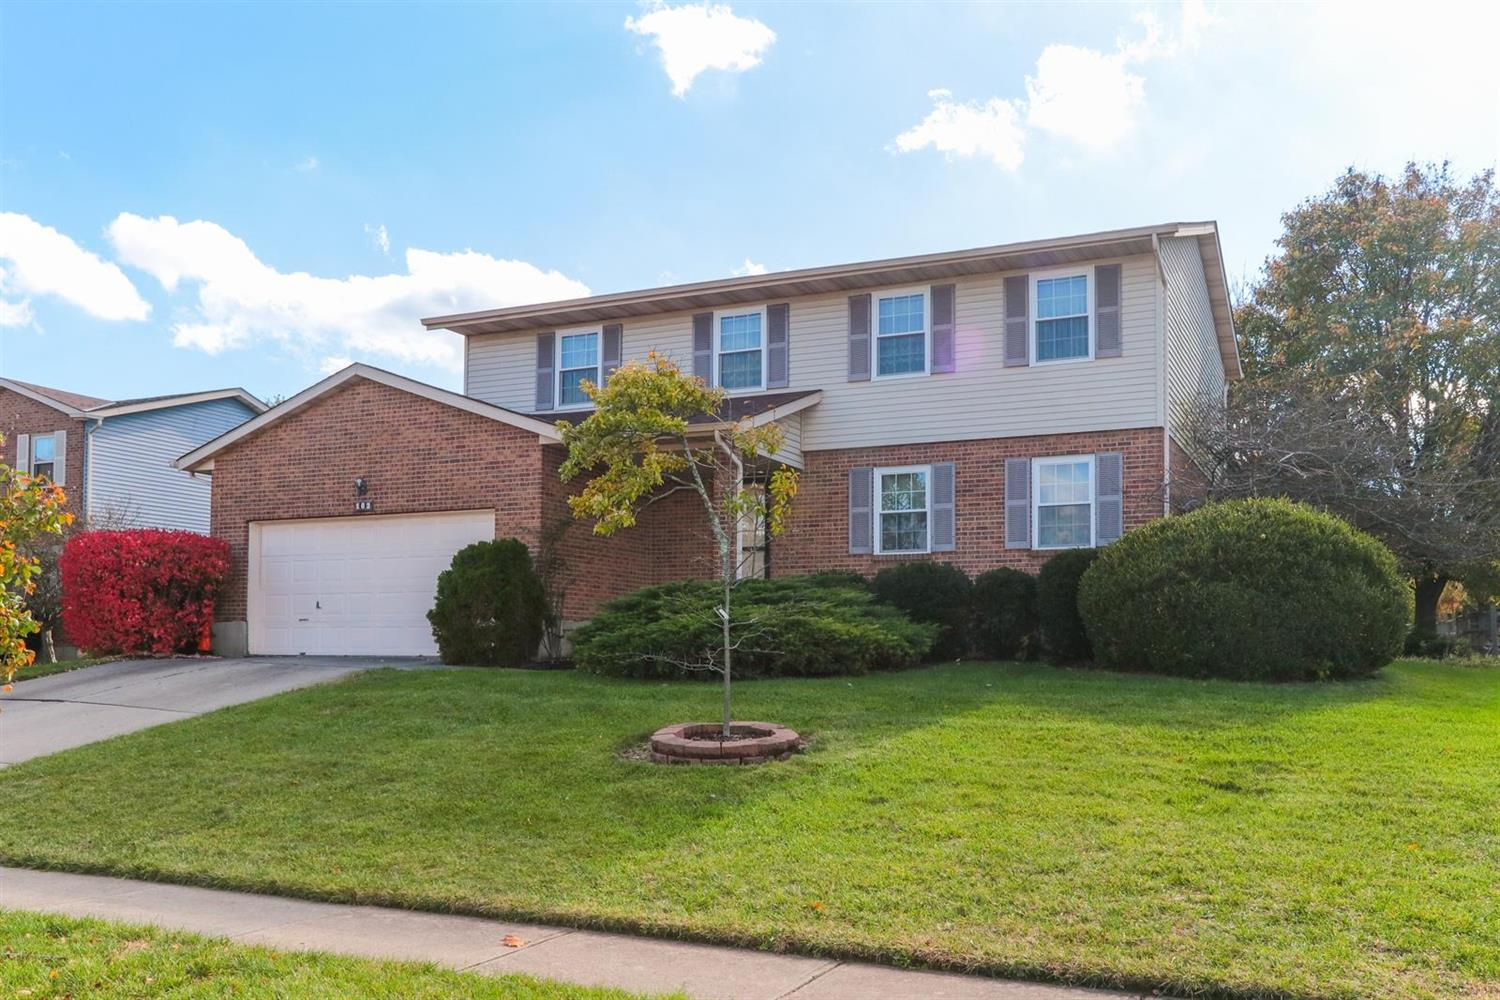 Property for sale at 163 Martha Lane, Fairfield,  OH 45014